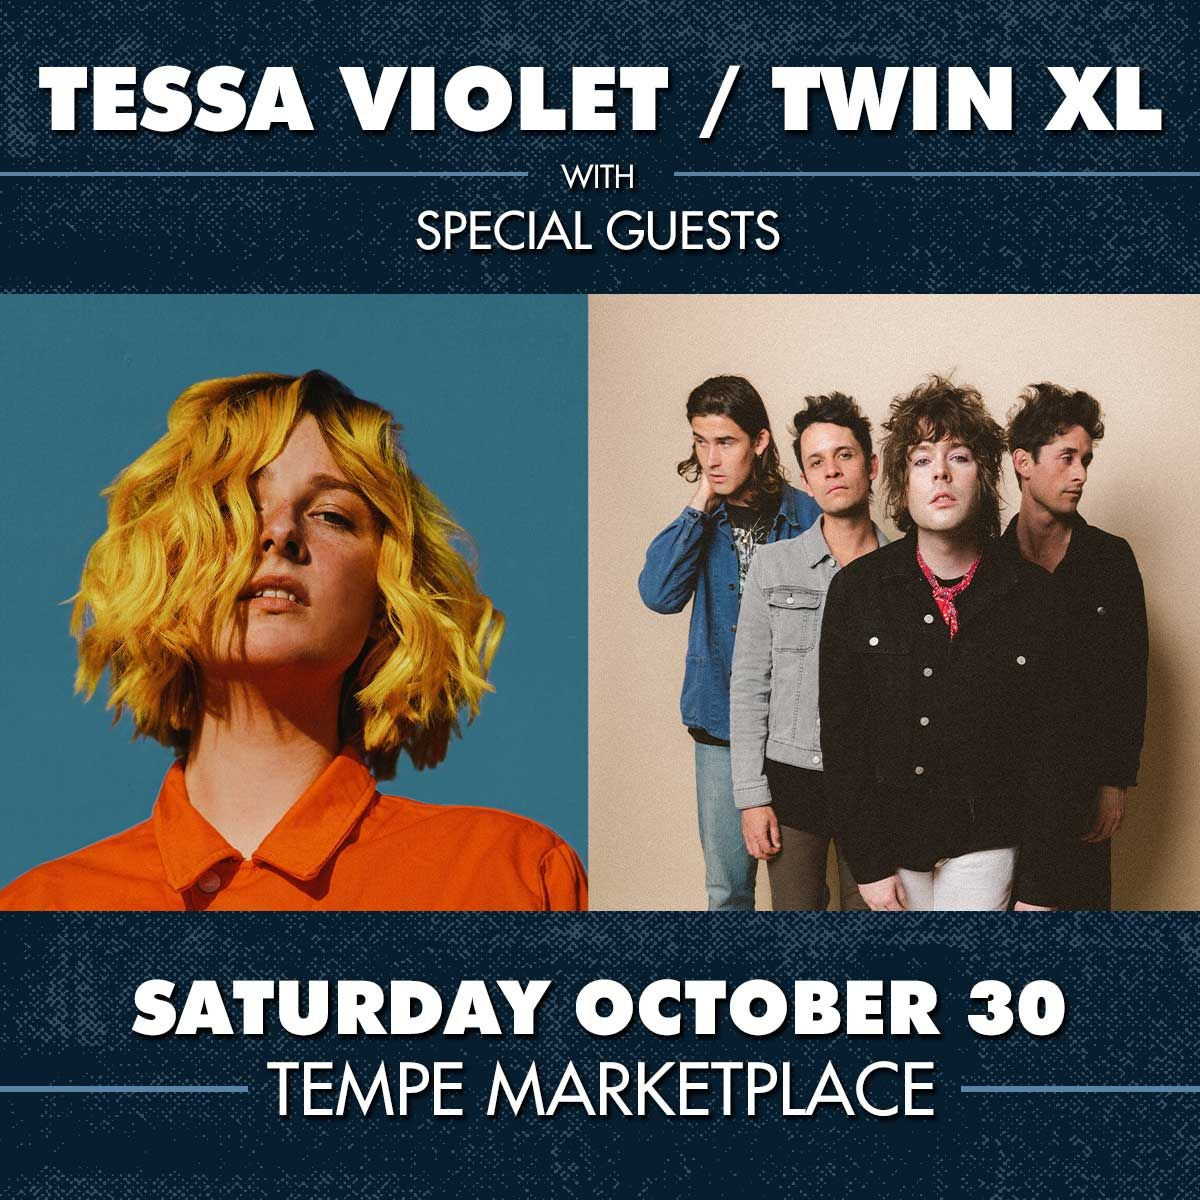 TESSA VIOLET and TWIN XL